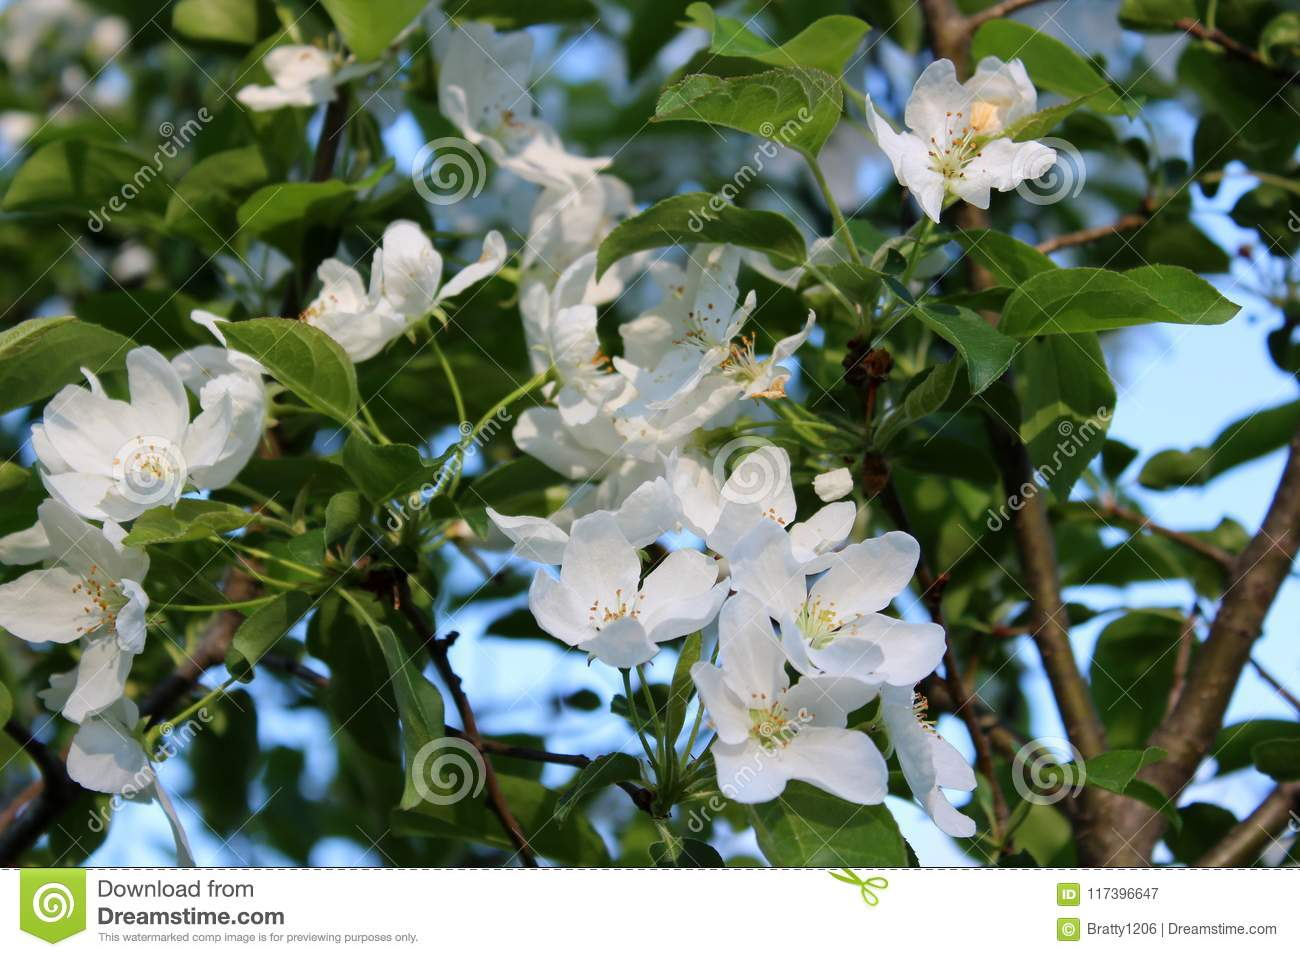 Fragrant White Flowers On Branches Of Tree With Blue Skies Beyond